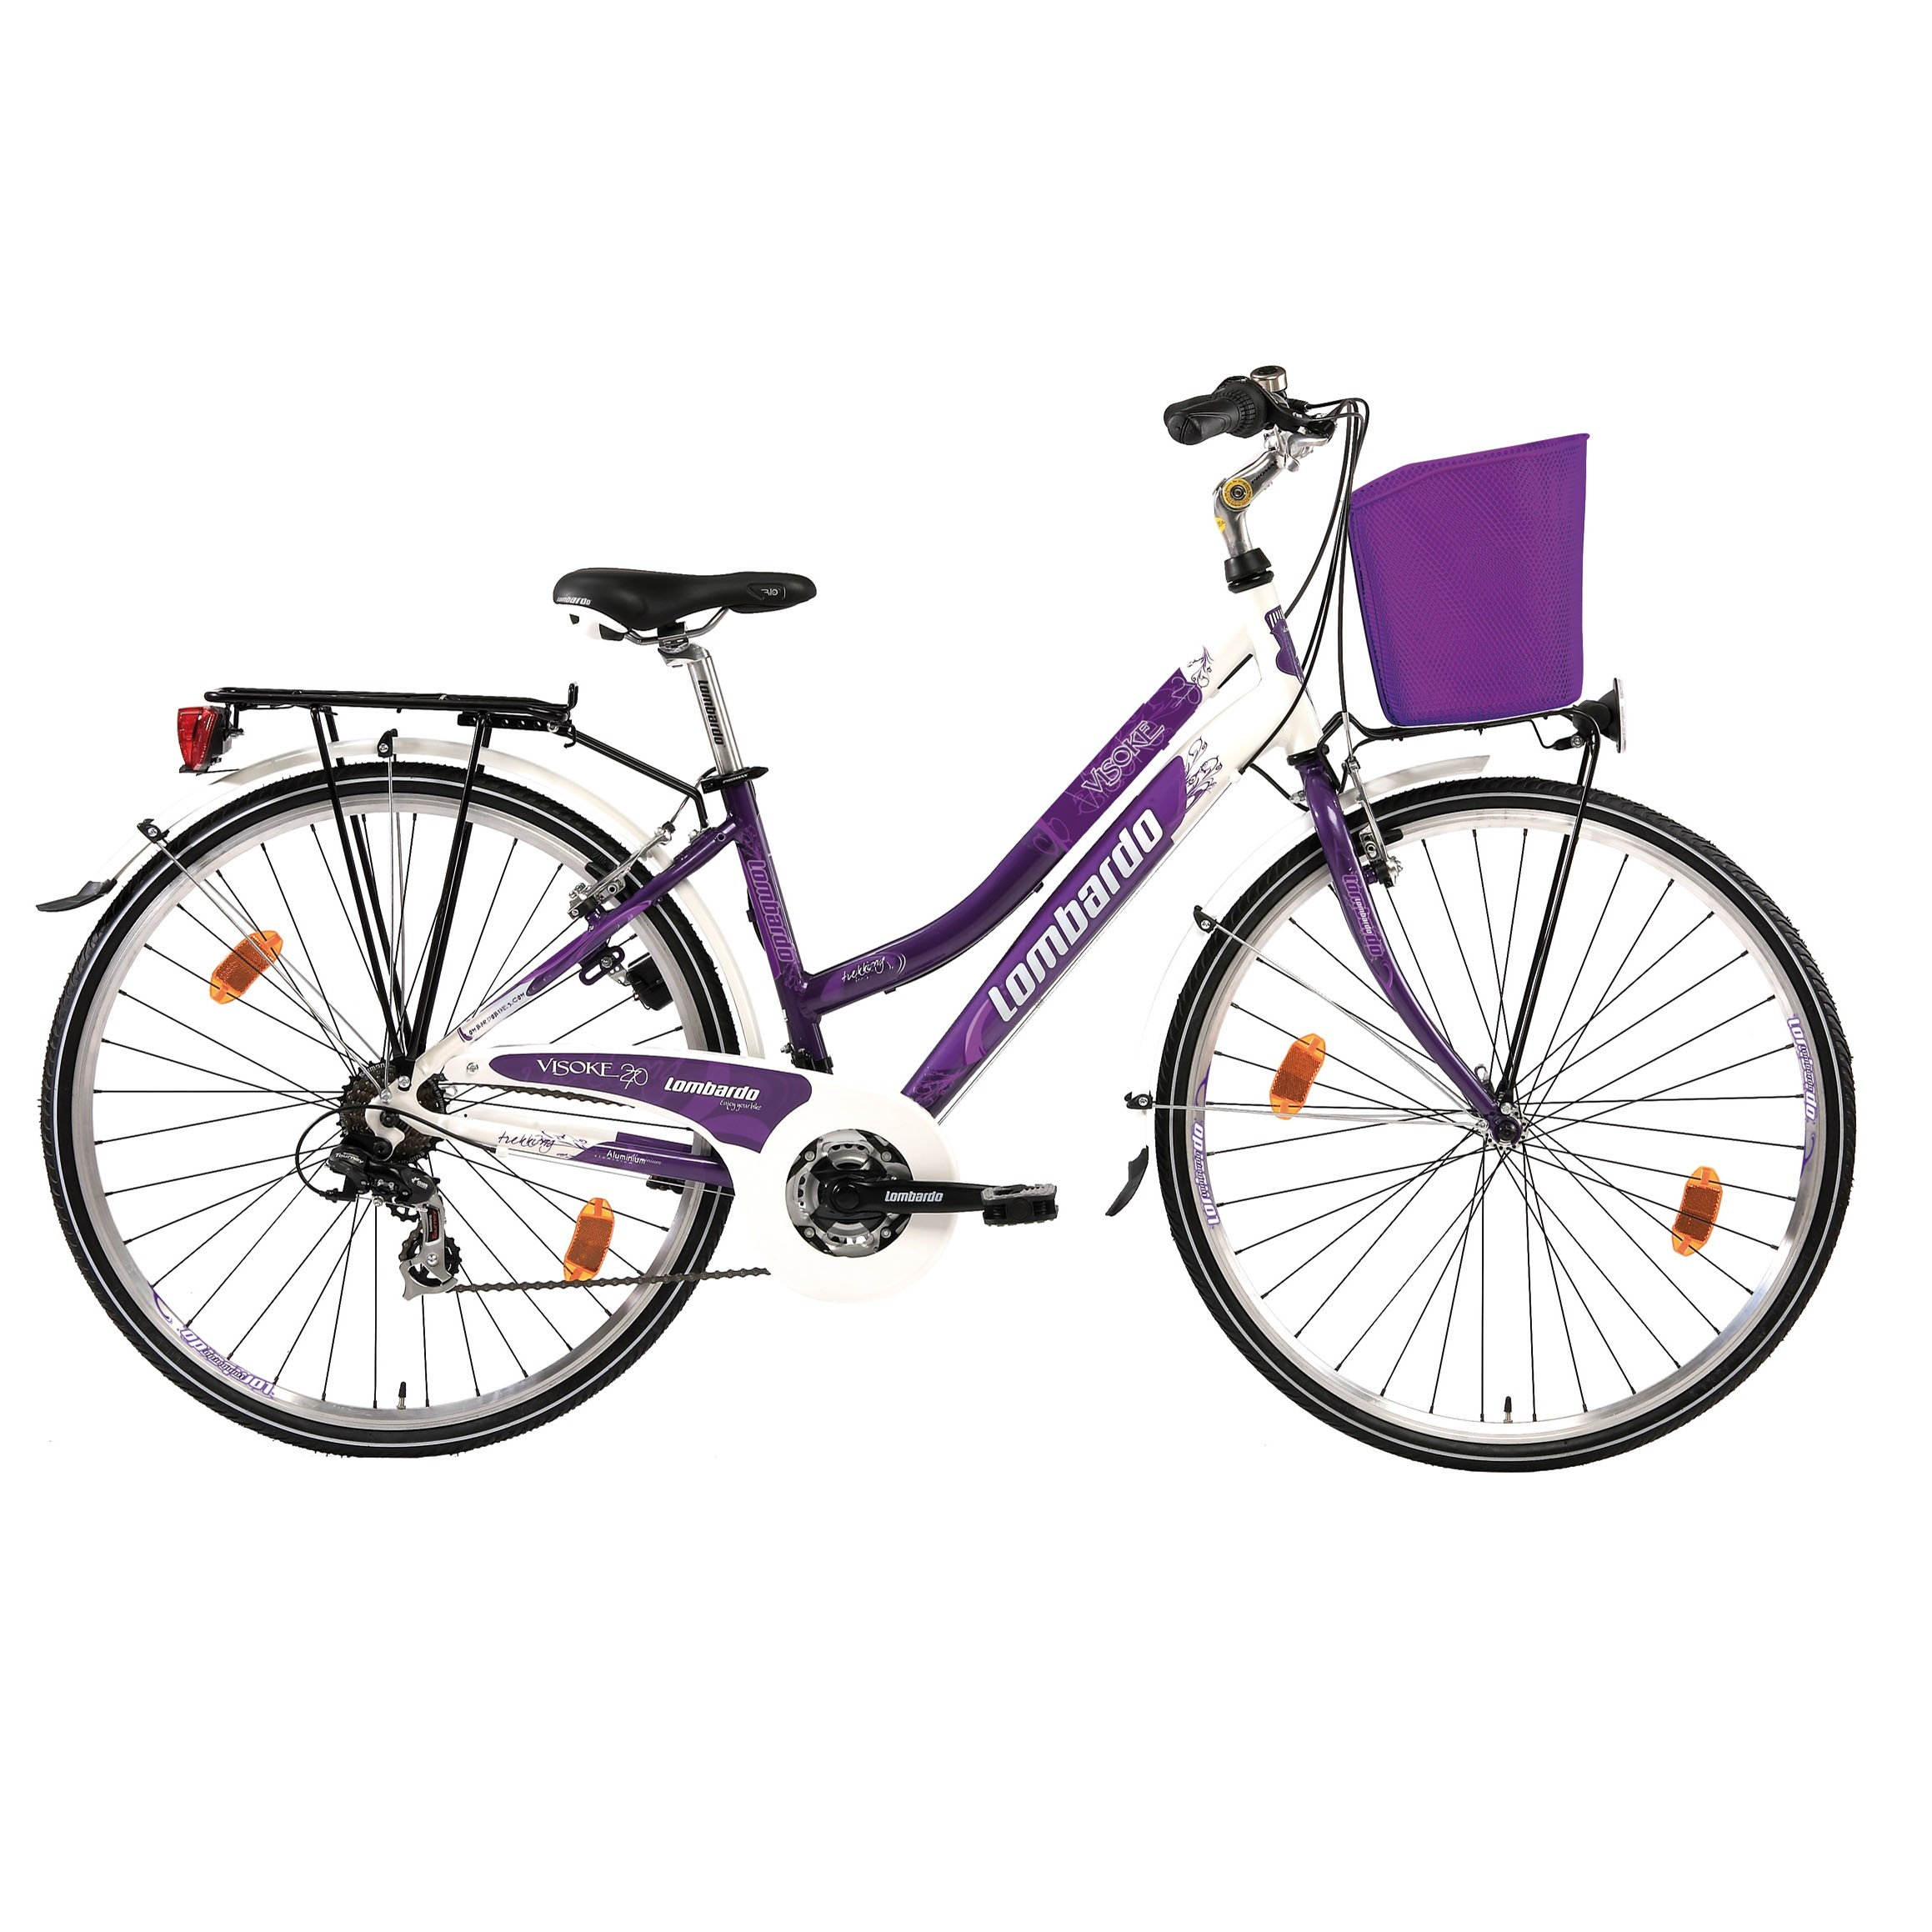 Lombardo Visoke Women's 19 inch Bike (Mutliple Colors)